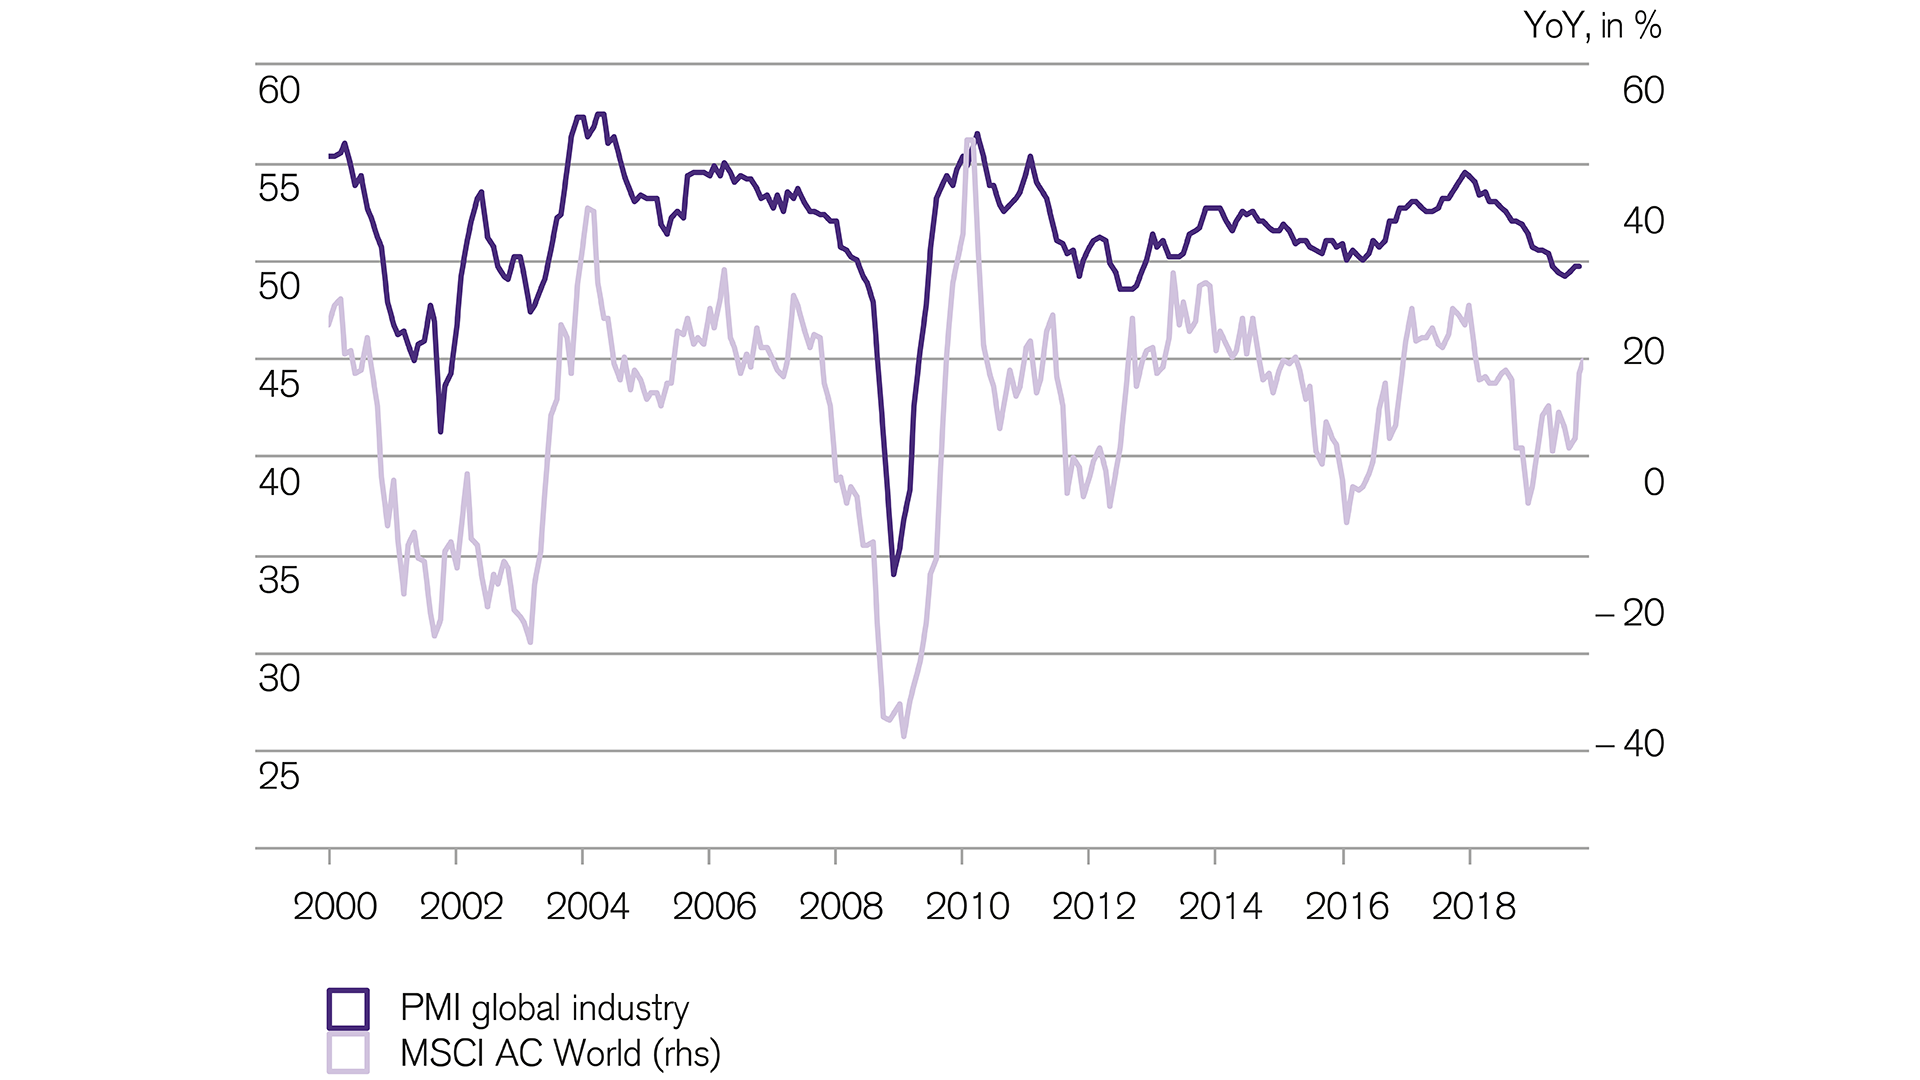 Stabilization of leading indicators supports equities